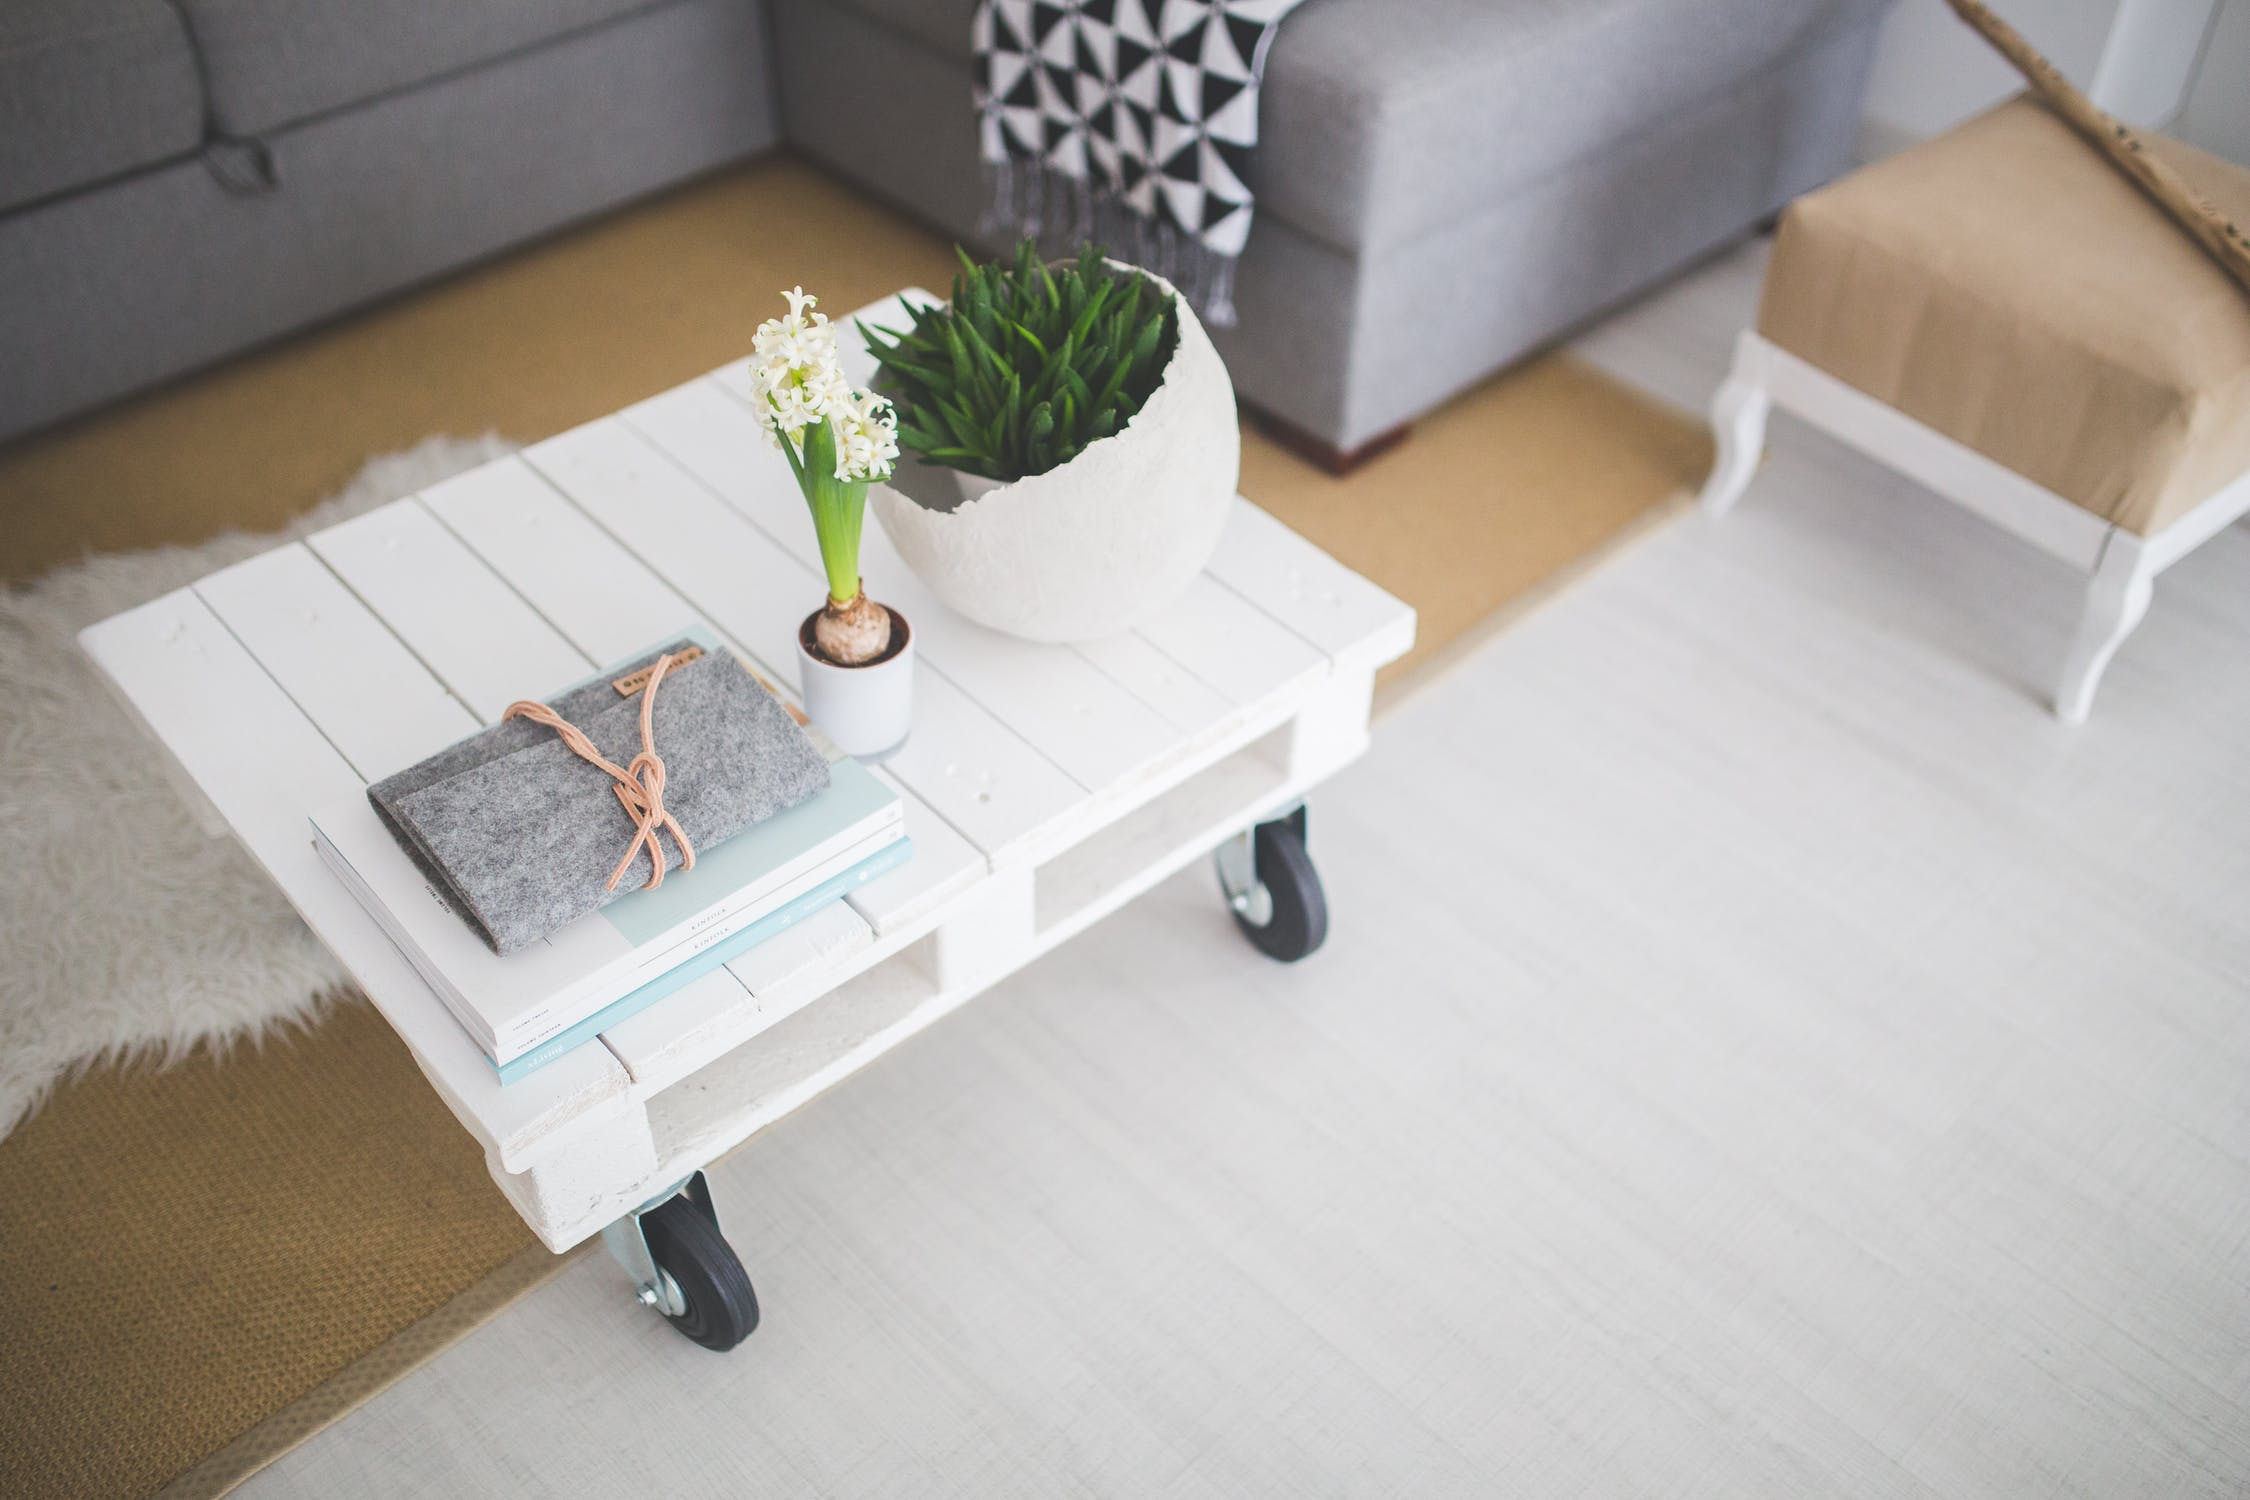 The Ultimate January Cleaning Checklist 2020